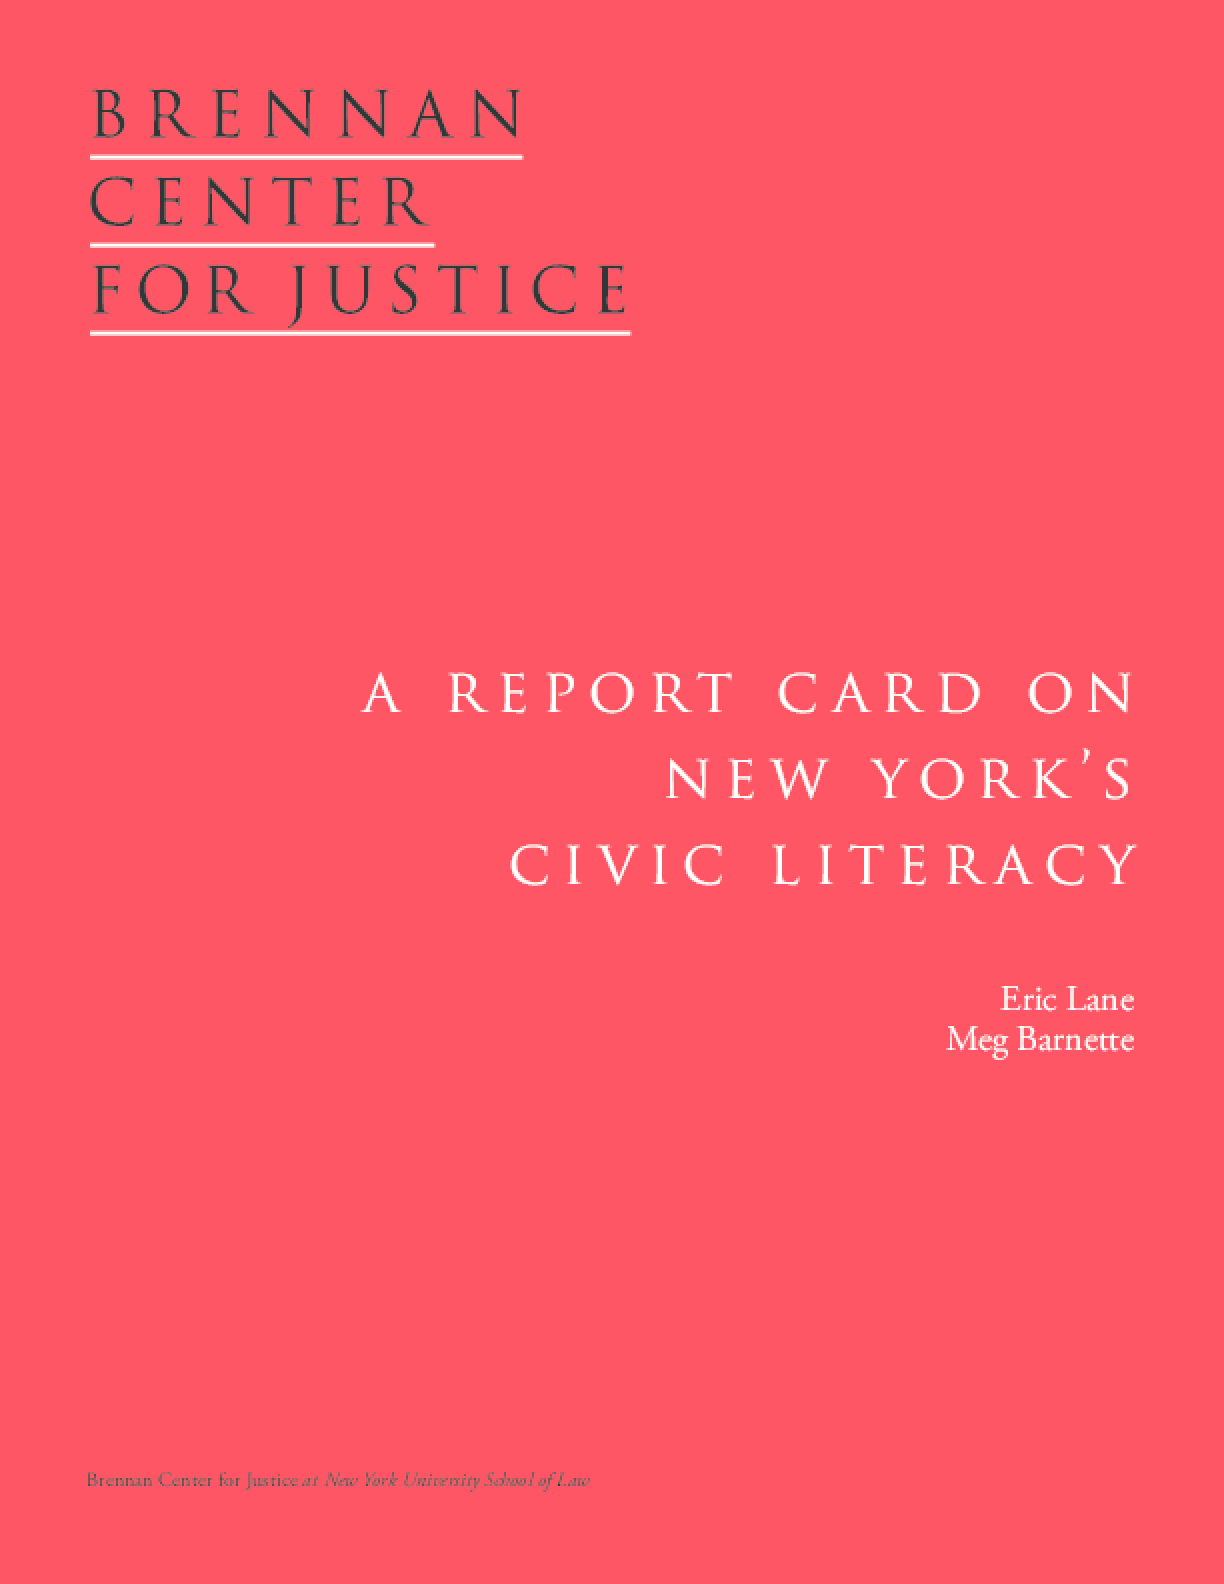 A Report on New York's Civic Literacy